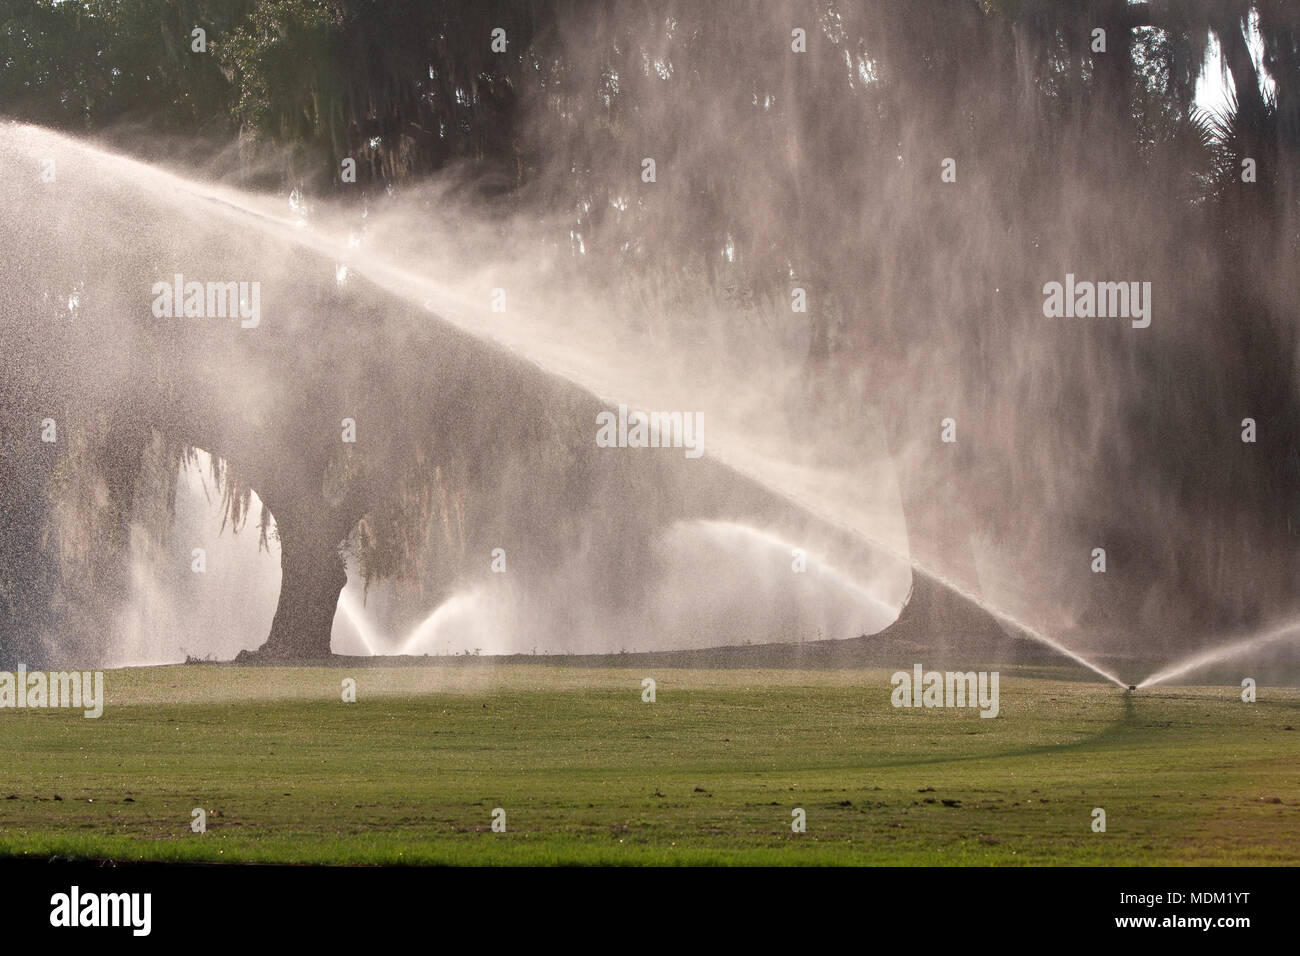 Sprinklers pour water onto golf course fairway - Stock Image